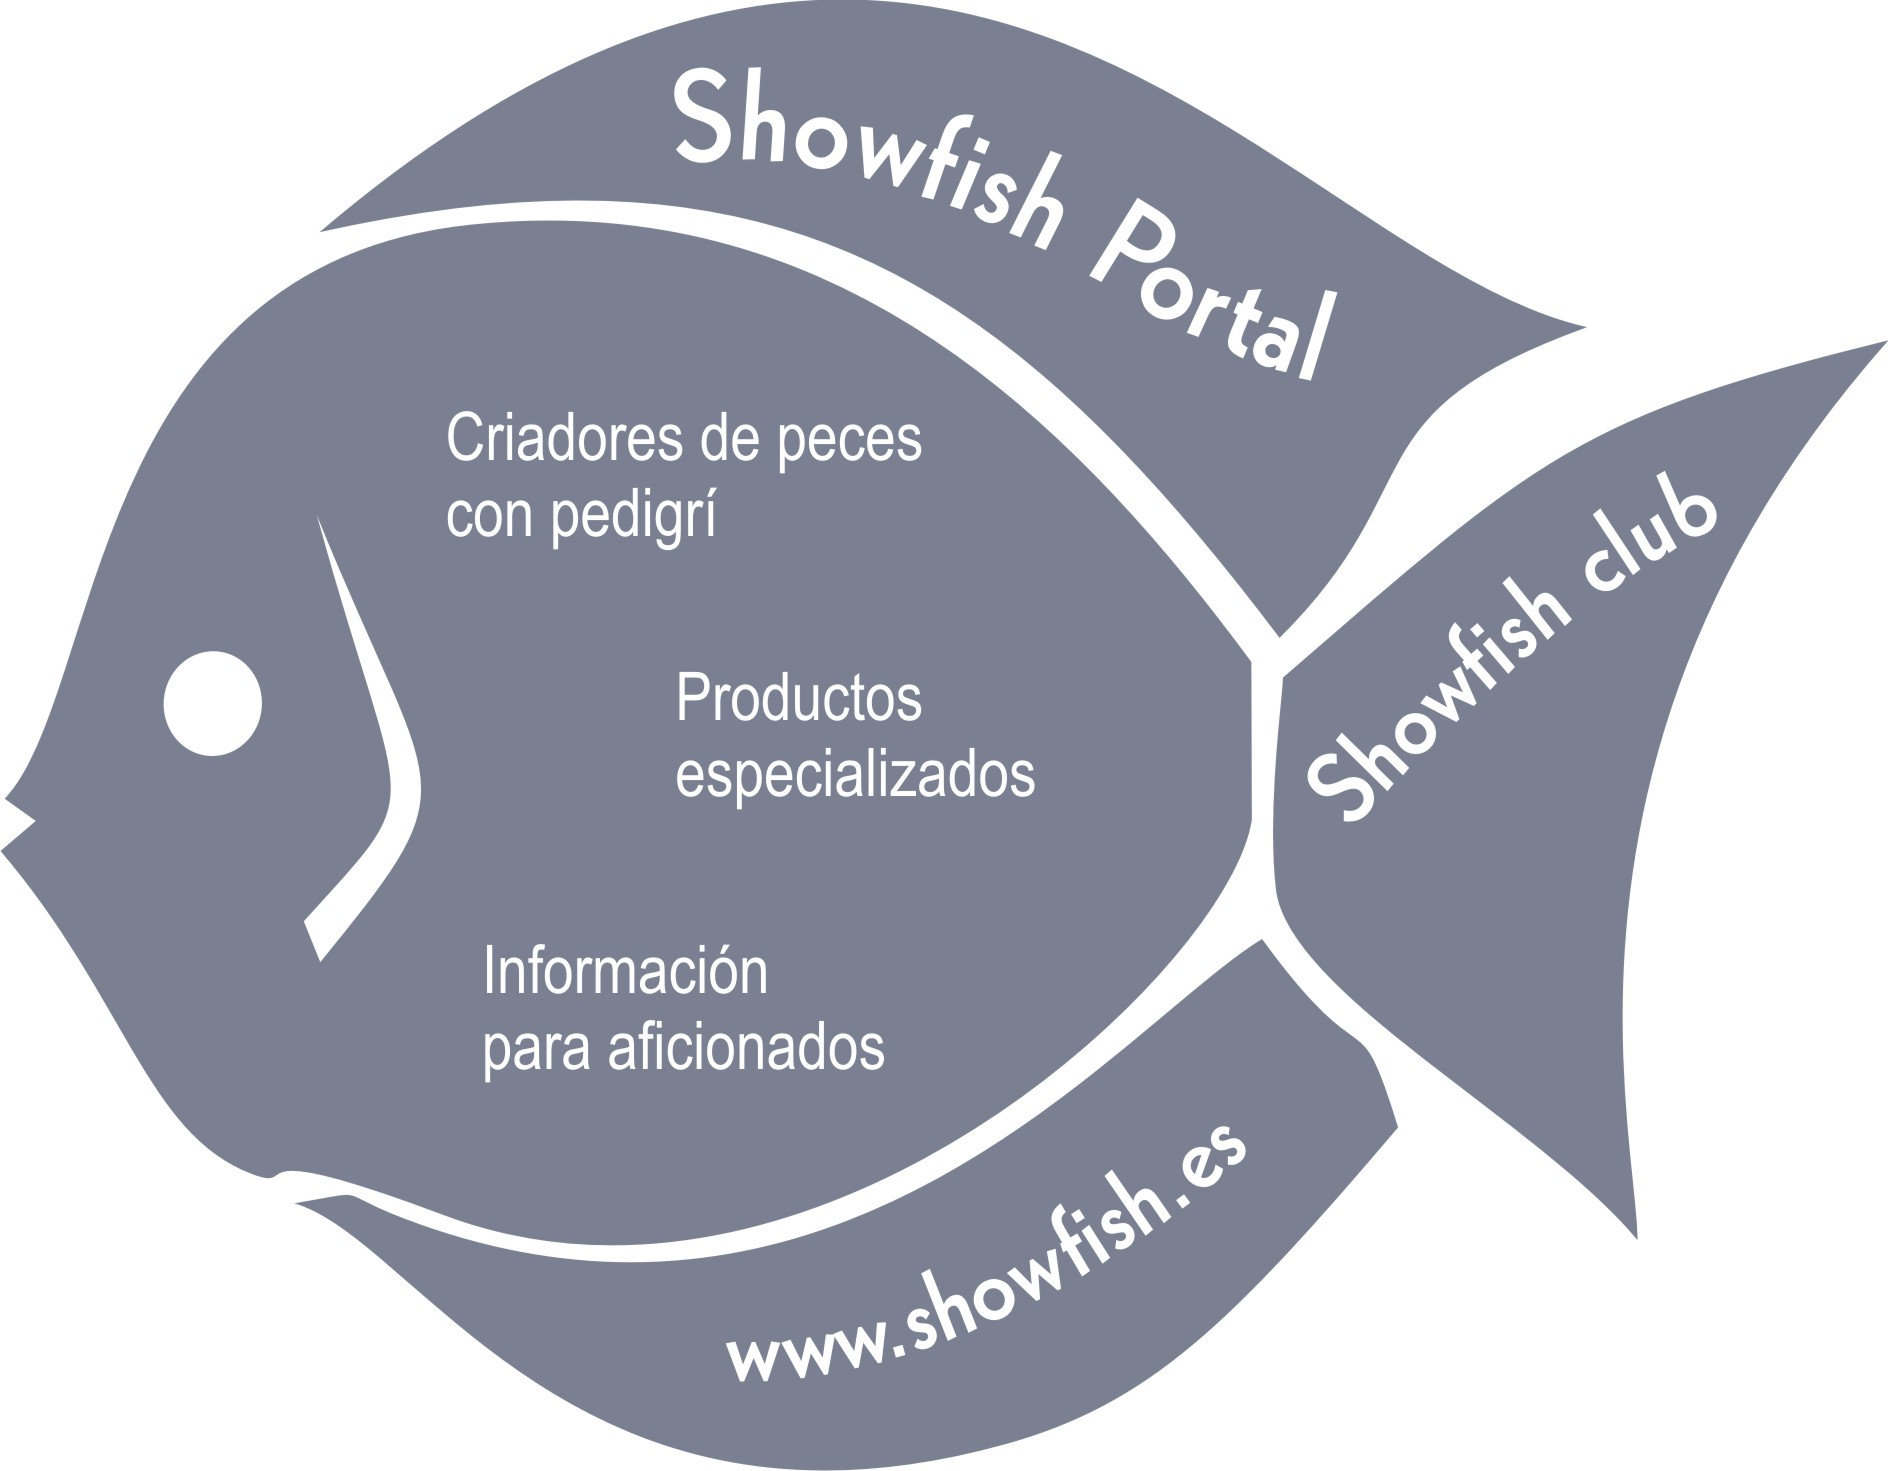 ShowFish